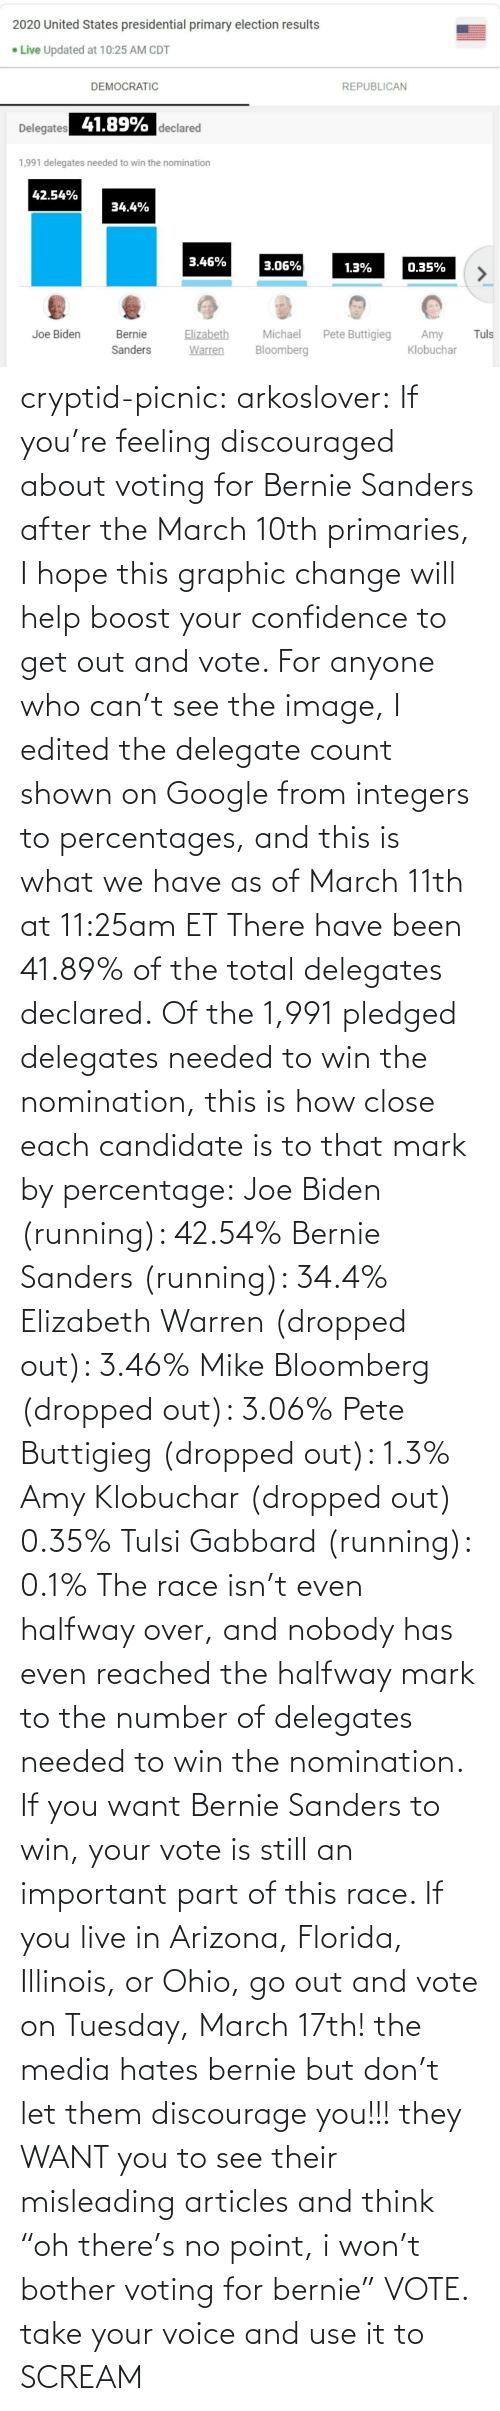 "Scream: cryptid-picnic: arkoslover:   If you're feeling discouraged about voting for Bernie Sanders after the March 10th primaries, I hope this graphic change will help boost your confidence to get out and vote. For anyone who can't see the image, I edited the delegate count shown on Google from integers to percentages, and this is what we have as of March 11th at 11:25am ET There have been 41.89% of the total delegates declared. Of the 1,991 pledged delegates needed to win the nomination, this is how close each candidate is to that mark by percentage: Joe Biden (running): 42.54% Bernie Sanders (running): 34.4% Elizabeth Warren (dropped out): 3.46% Mike Bloomberg (dropped out): 3.06% Pete Buttigieg (dropped out): 1.3% Amy Klobuchar (dropped out) 0.35% Tulsi Gabbard (running): 0.1% The race isn't even halfway over, and nobody has even reached the halfway mark to the number of delegates needed to win the nomination. If you want Bernie Sanders to win, your vote is still an important part of this race. If you live in Arizona, Florida, Illinois, or Ohio, go out and vote on Tuesday, March 17th!    the media hates bernie but don't let them discourage you!!! they WANT you to see their misleading articles and think ""oh there's no point, i won't bother voting for bernie"" VOTE. take your voice and use it to SCREAM"